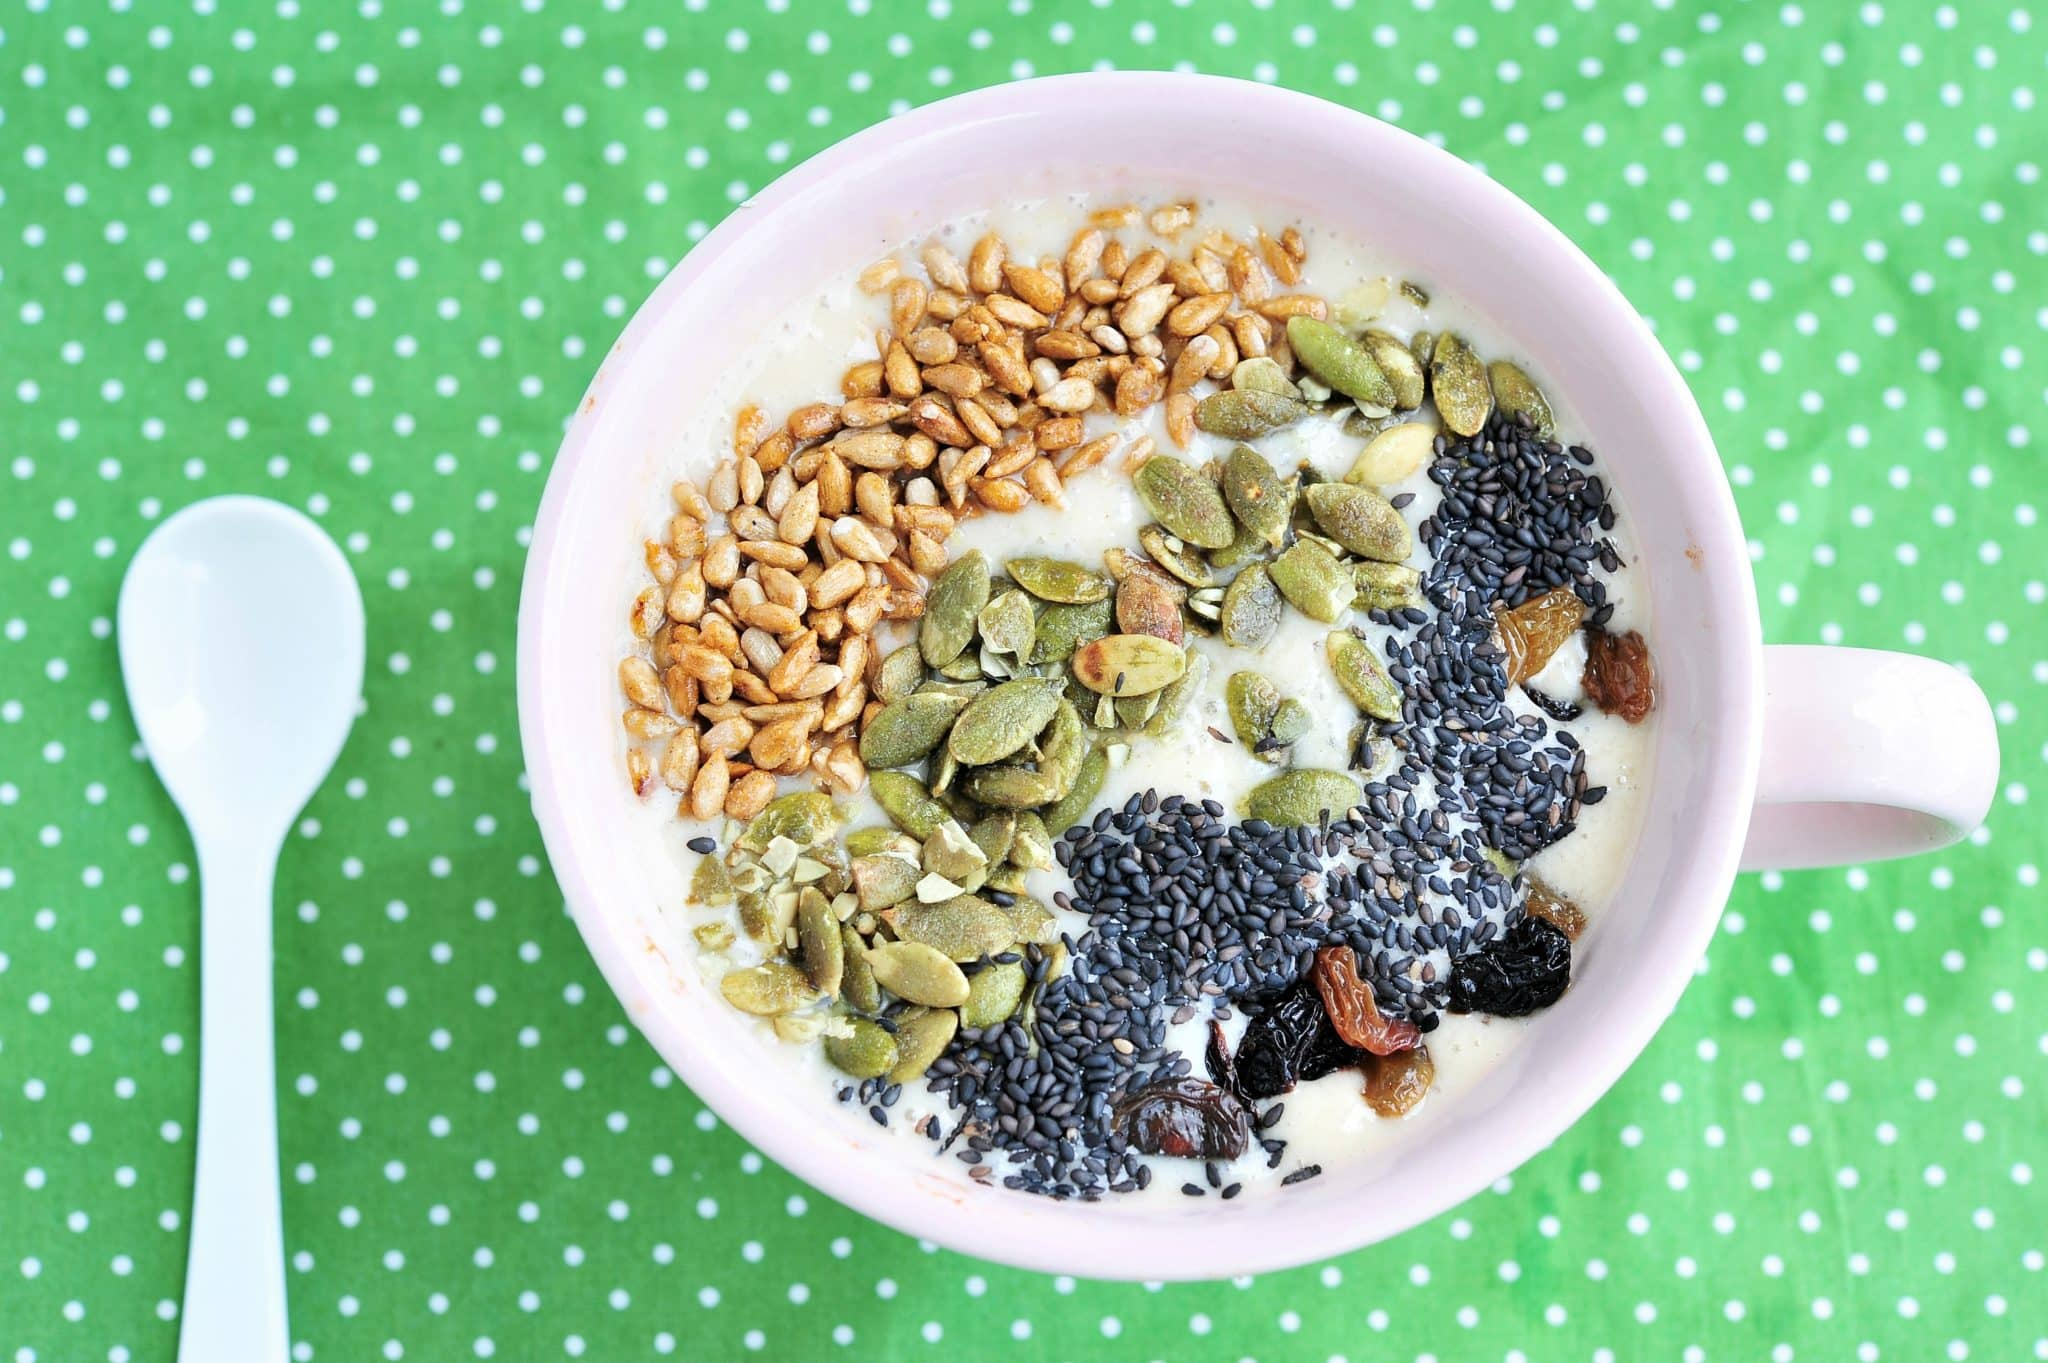 Try these 17 healthy and portable snacks next time you feel the munchies coming on!